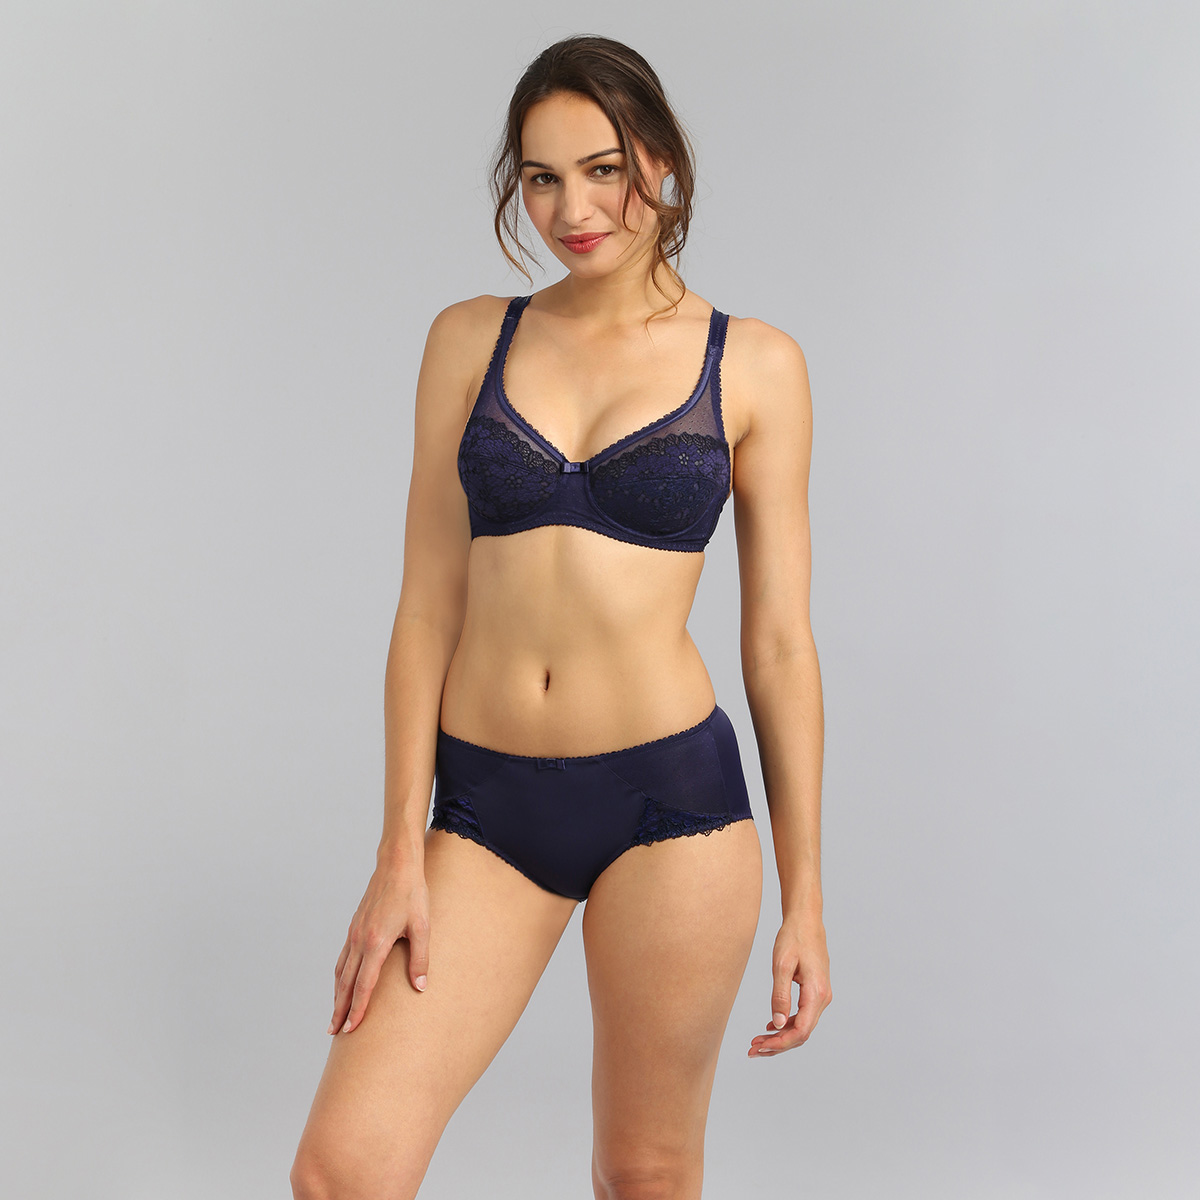 Midi knickers in navy Classic Lace Support, , PLAYTEX